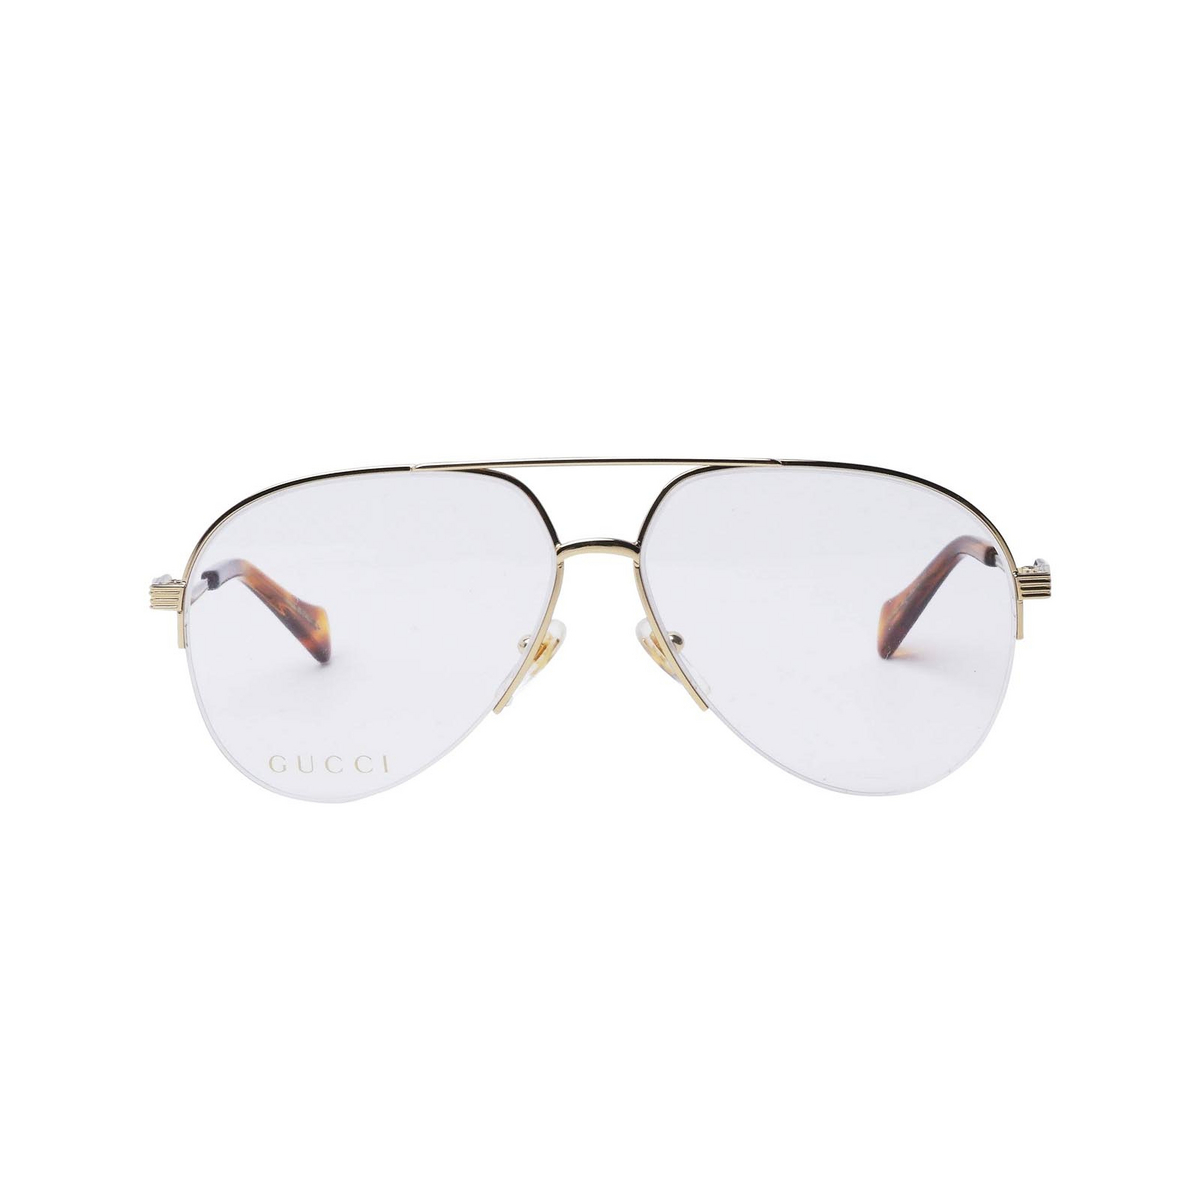 Gucci® Aviator Eyeglasses: GG0971O color Gold 001 - front view.